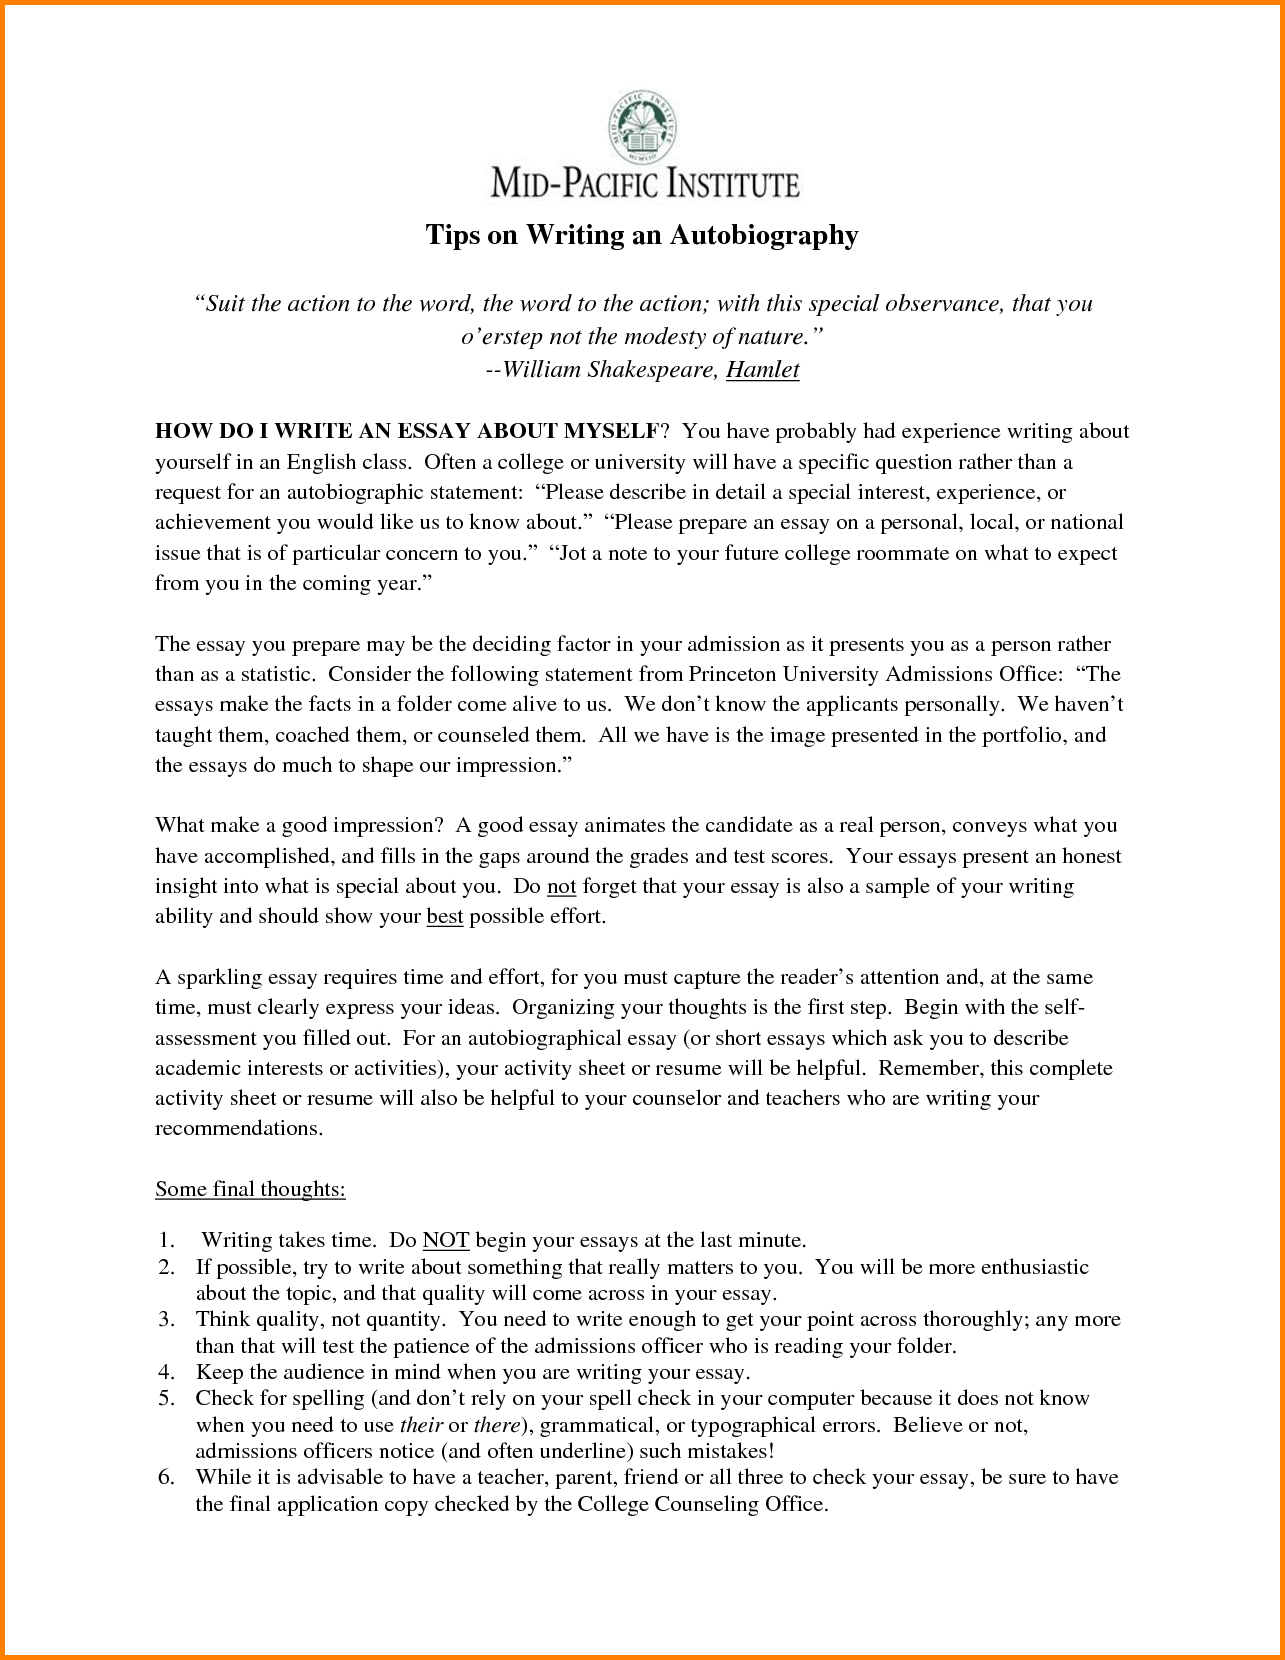 013 Best Solutions Of Tips On Writing Narrative Essay How To Start College Spectacular Write Application Outline Breathtaking An About Yourself Argumentative Step By Pdf Conclusion Paragraph Full